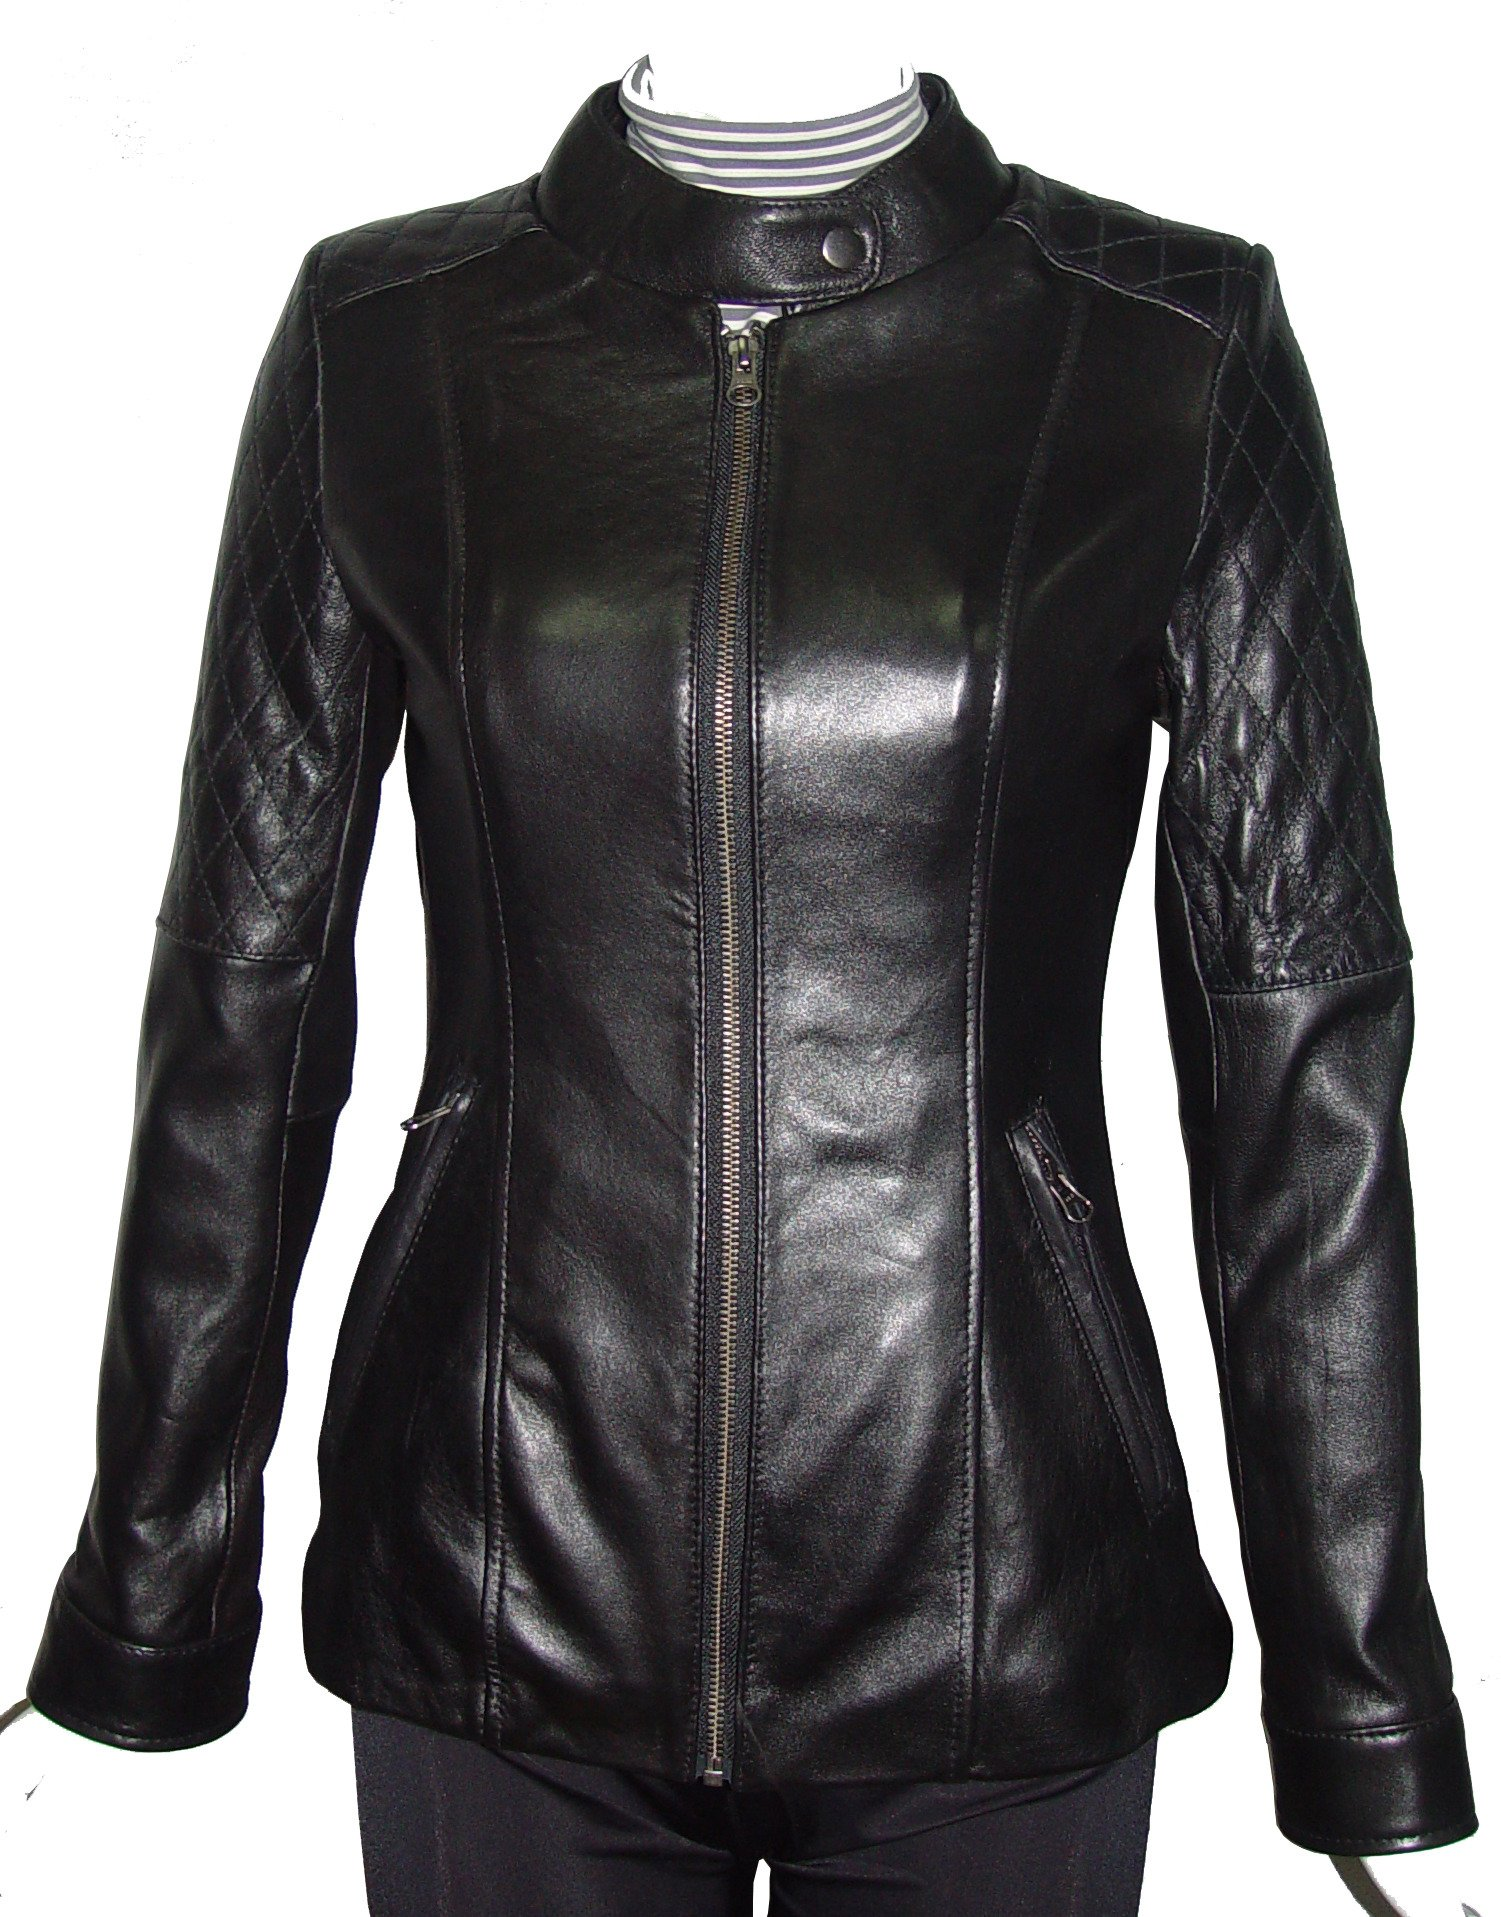 Nettailor 4136 Real Leather Jackets Best Cool Stylish Expensive Lining